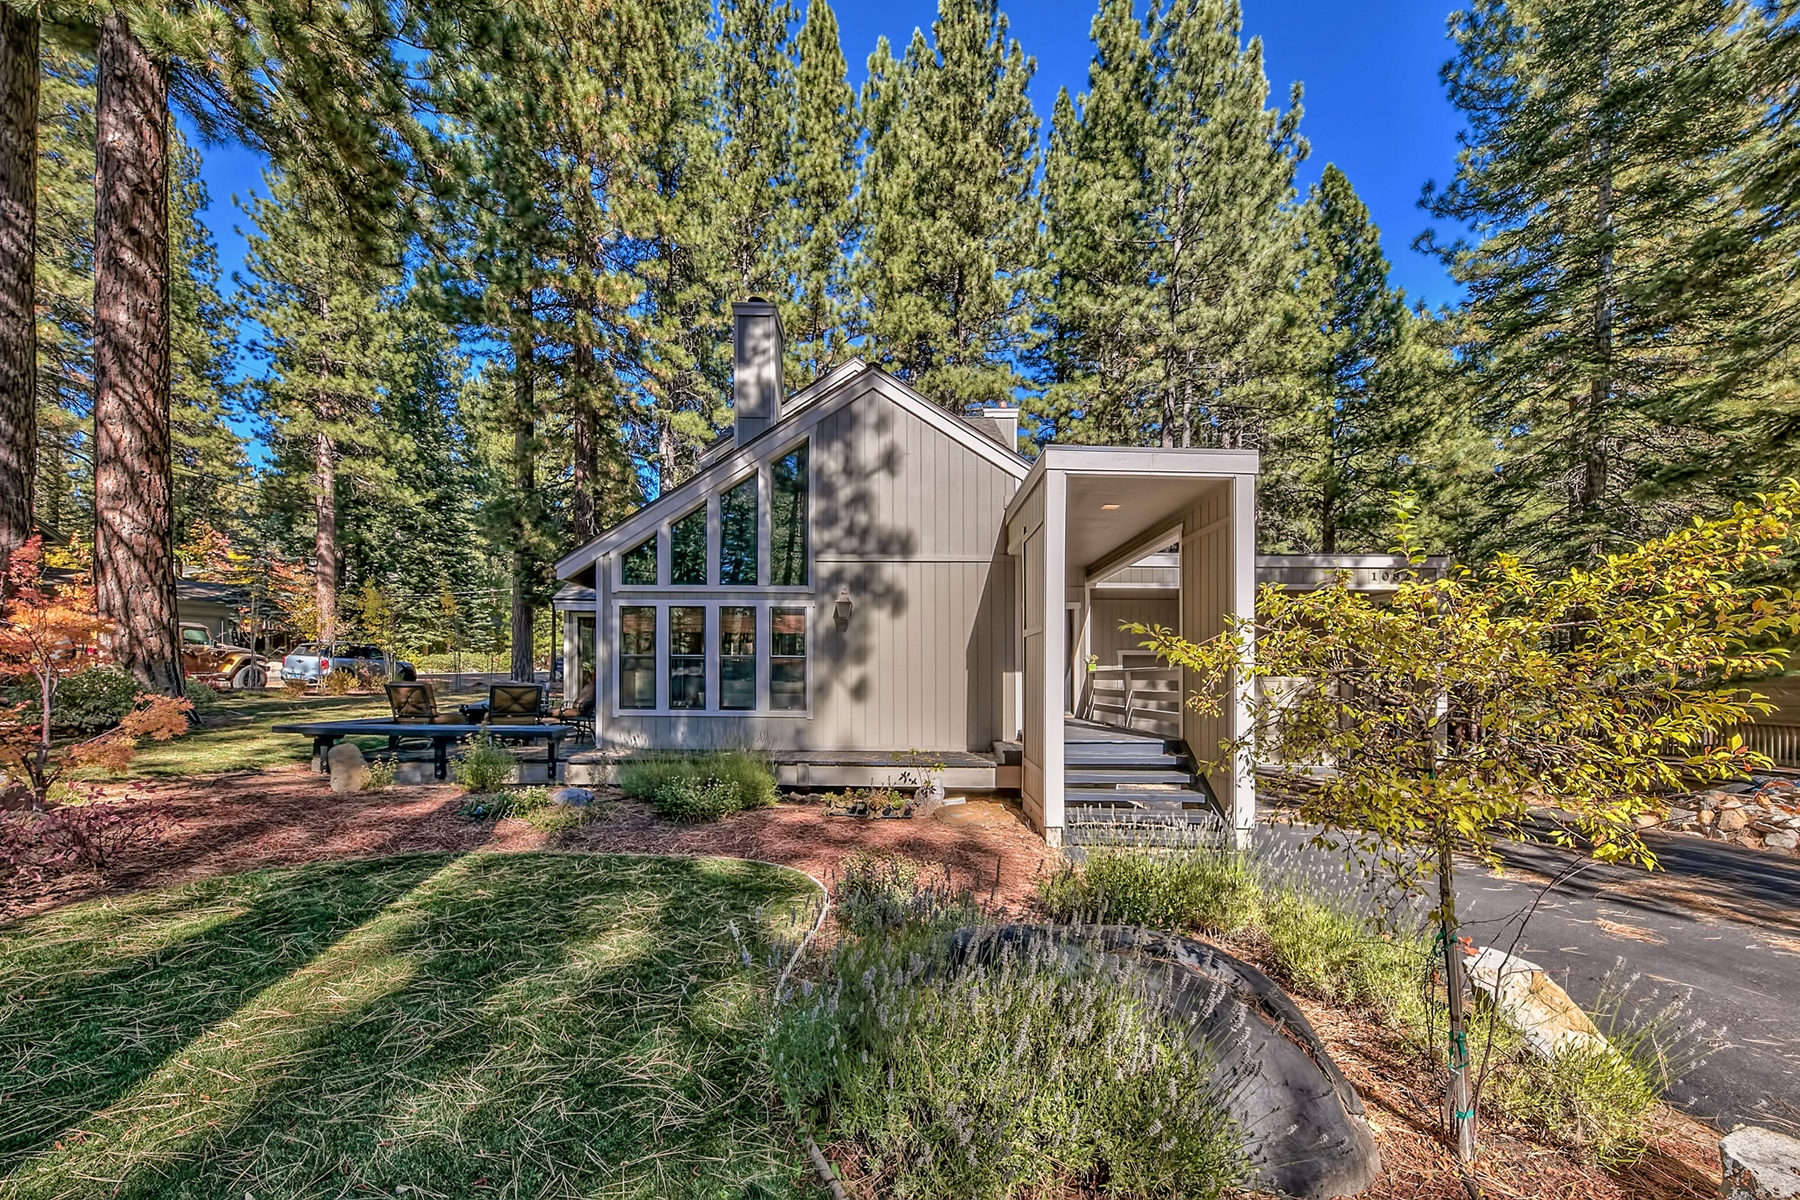 Single Family Home for Active at 1082 Flume Road, Incline Village, Nevada 1082 Flume Road Incline Village, Nevada 89451 United States